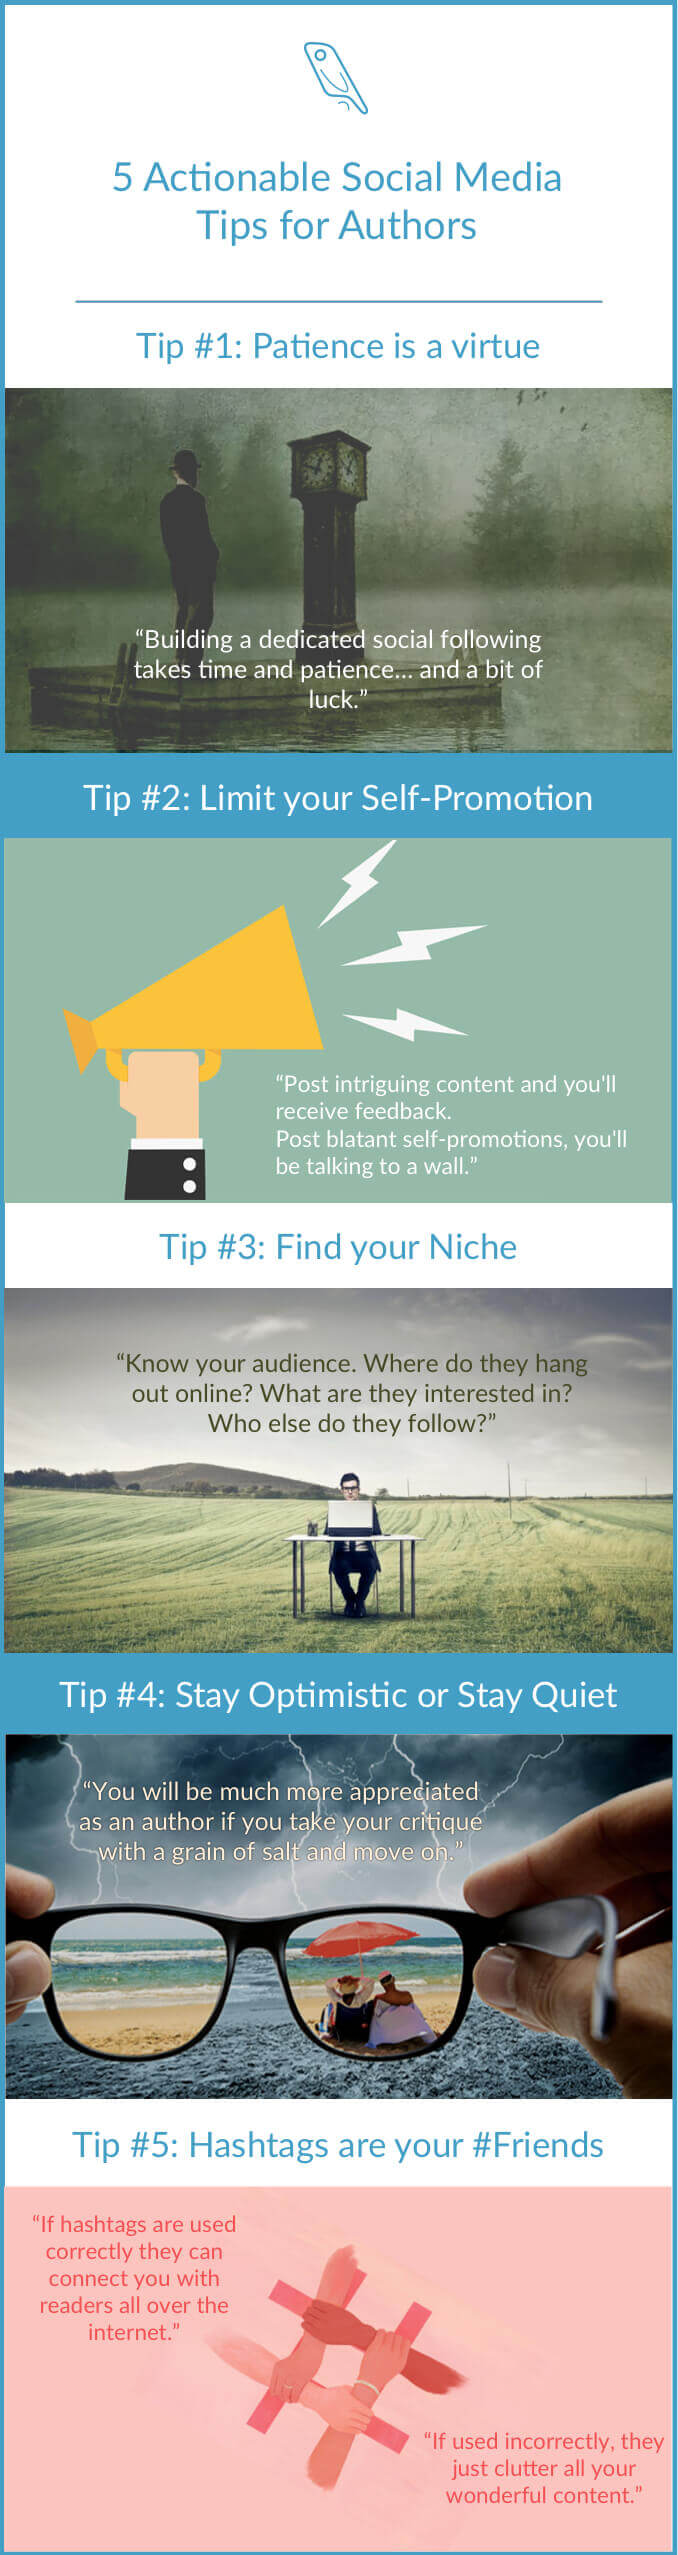 Social Media Tips for Authors